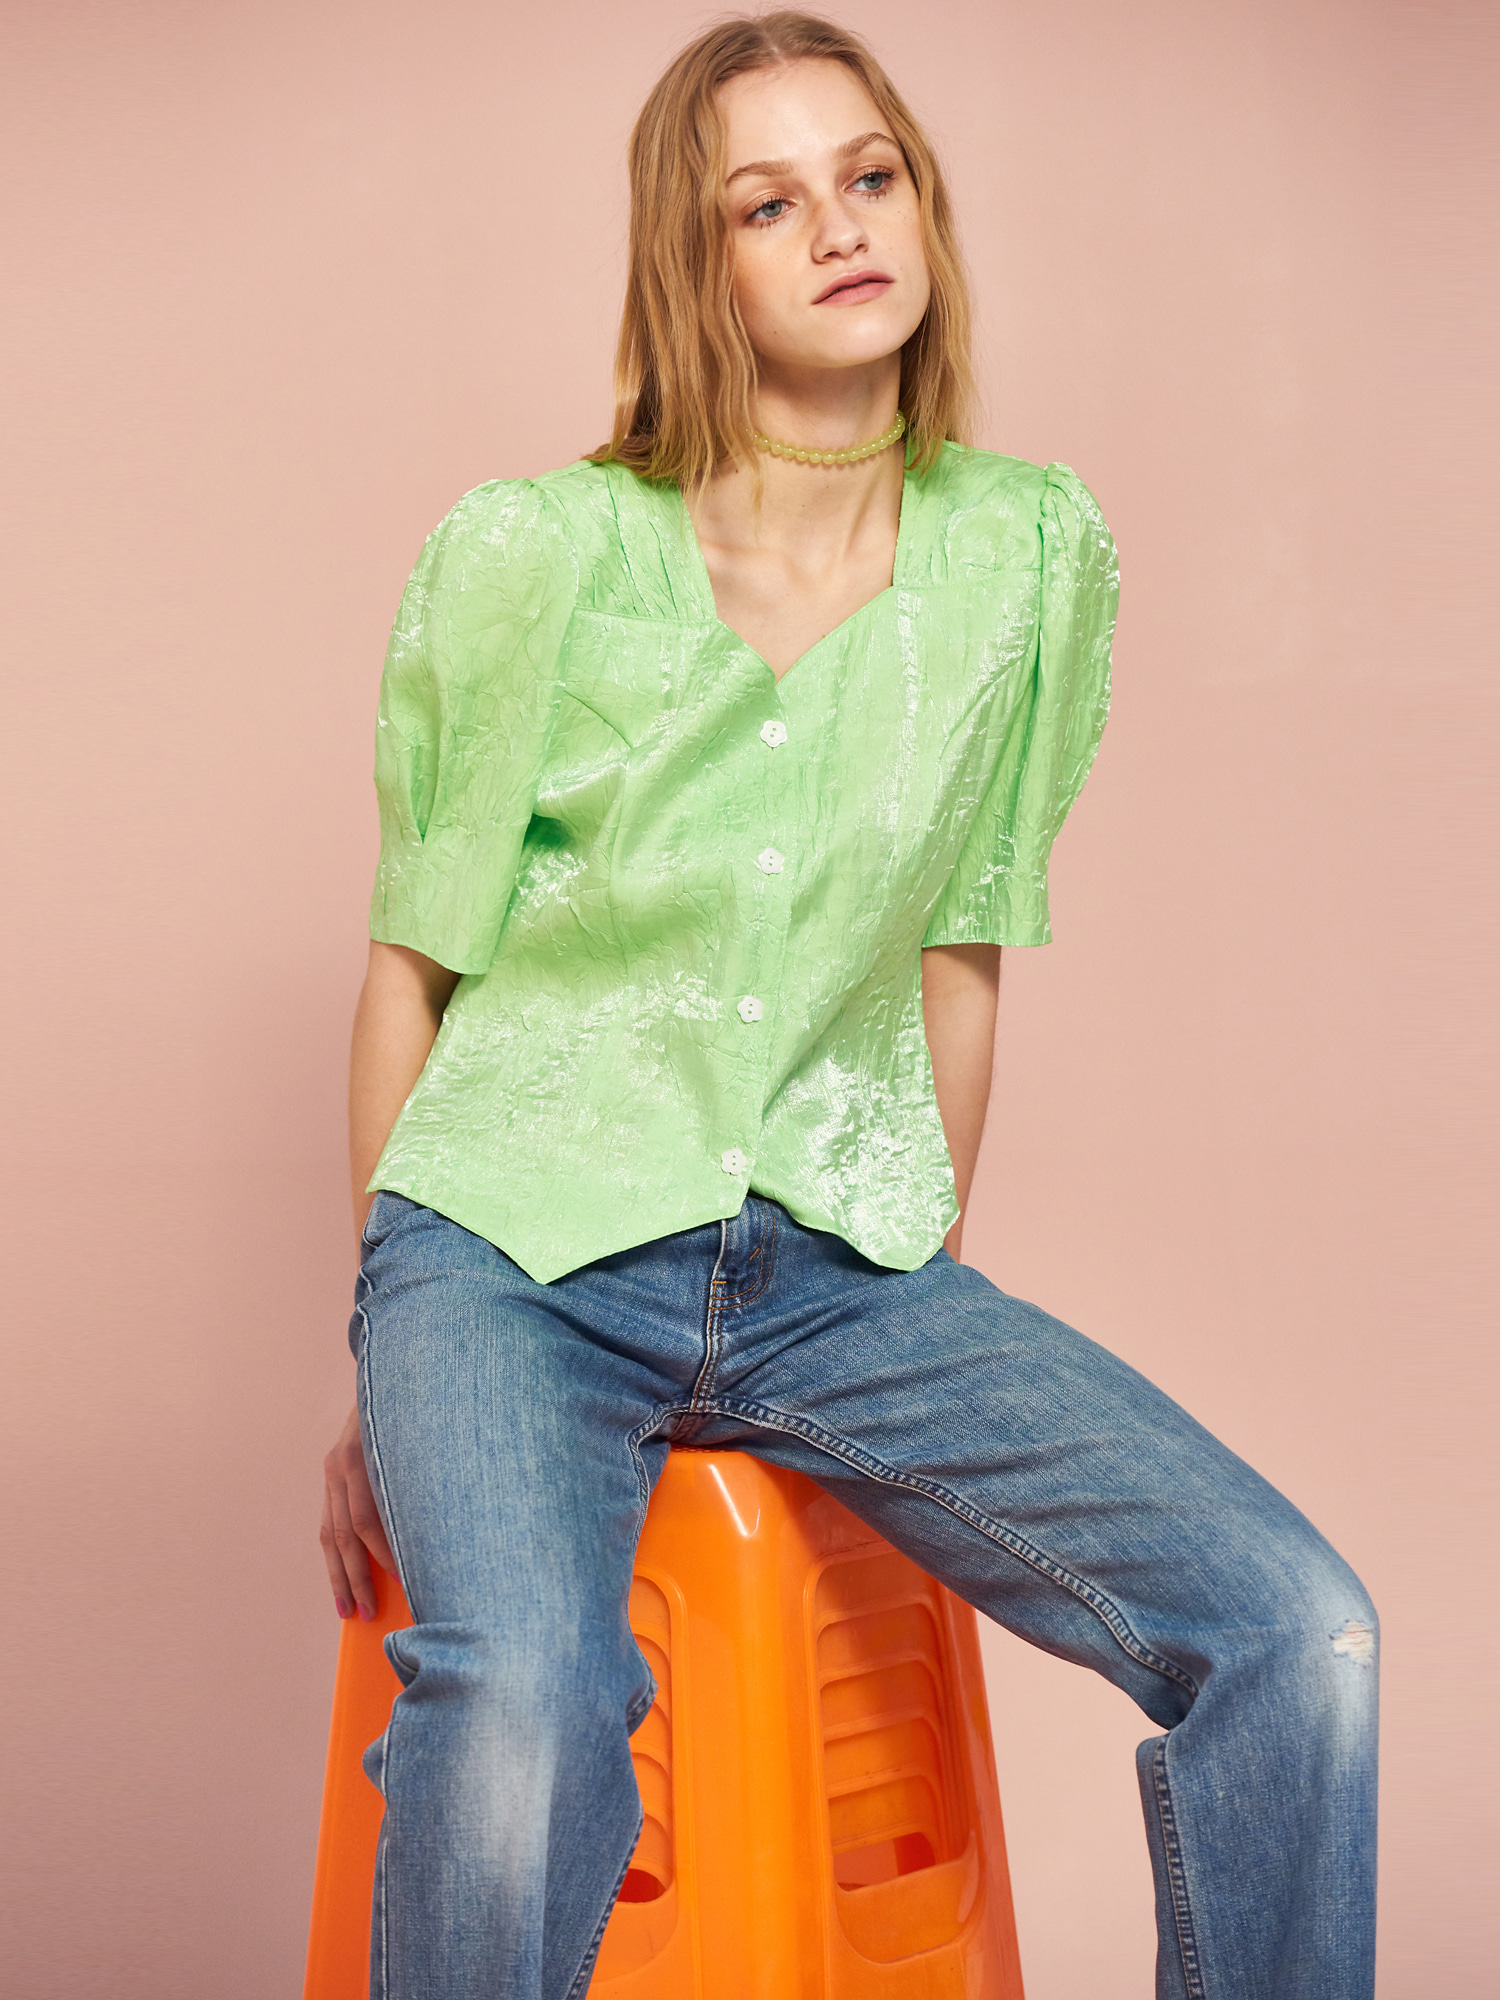 Shining Puff Blouse in Neon Lime